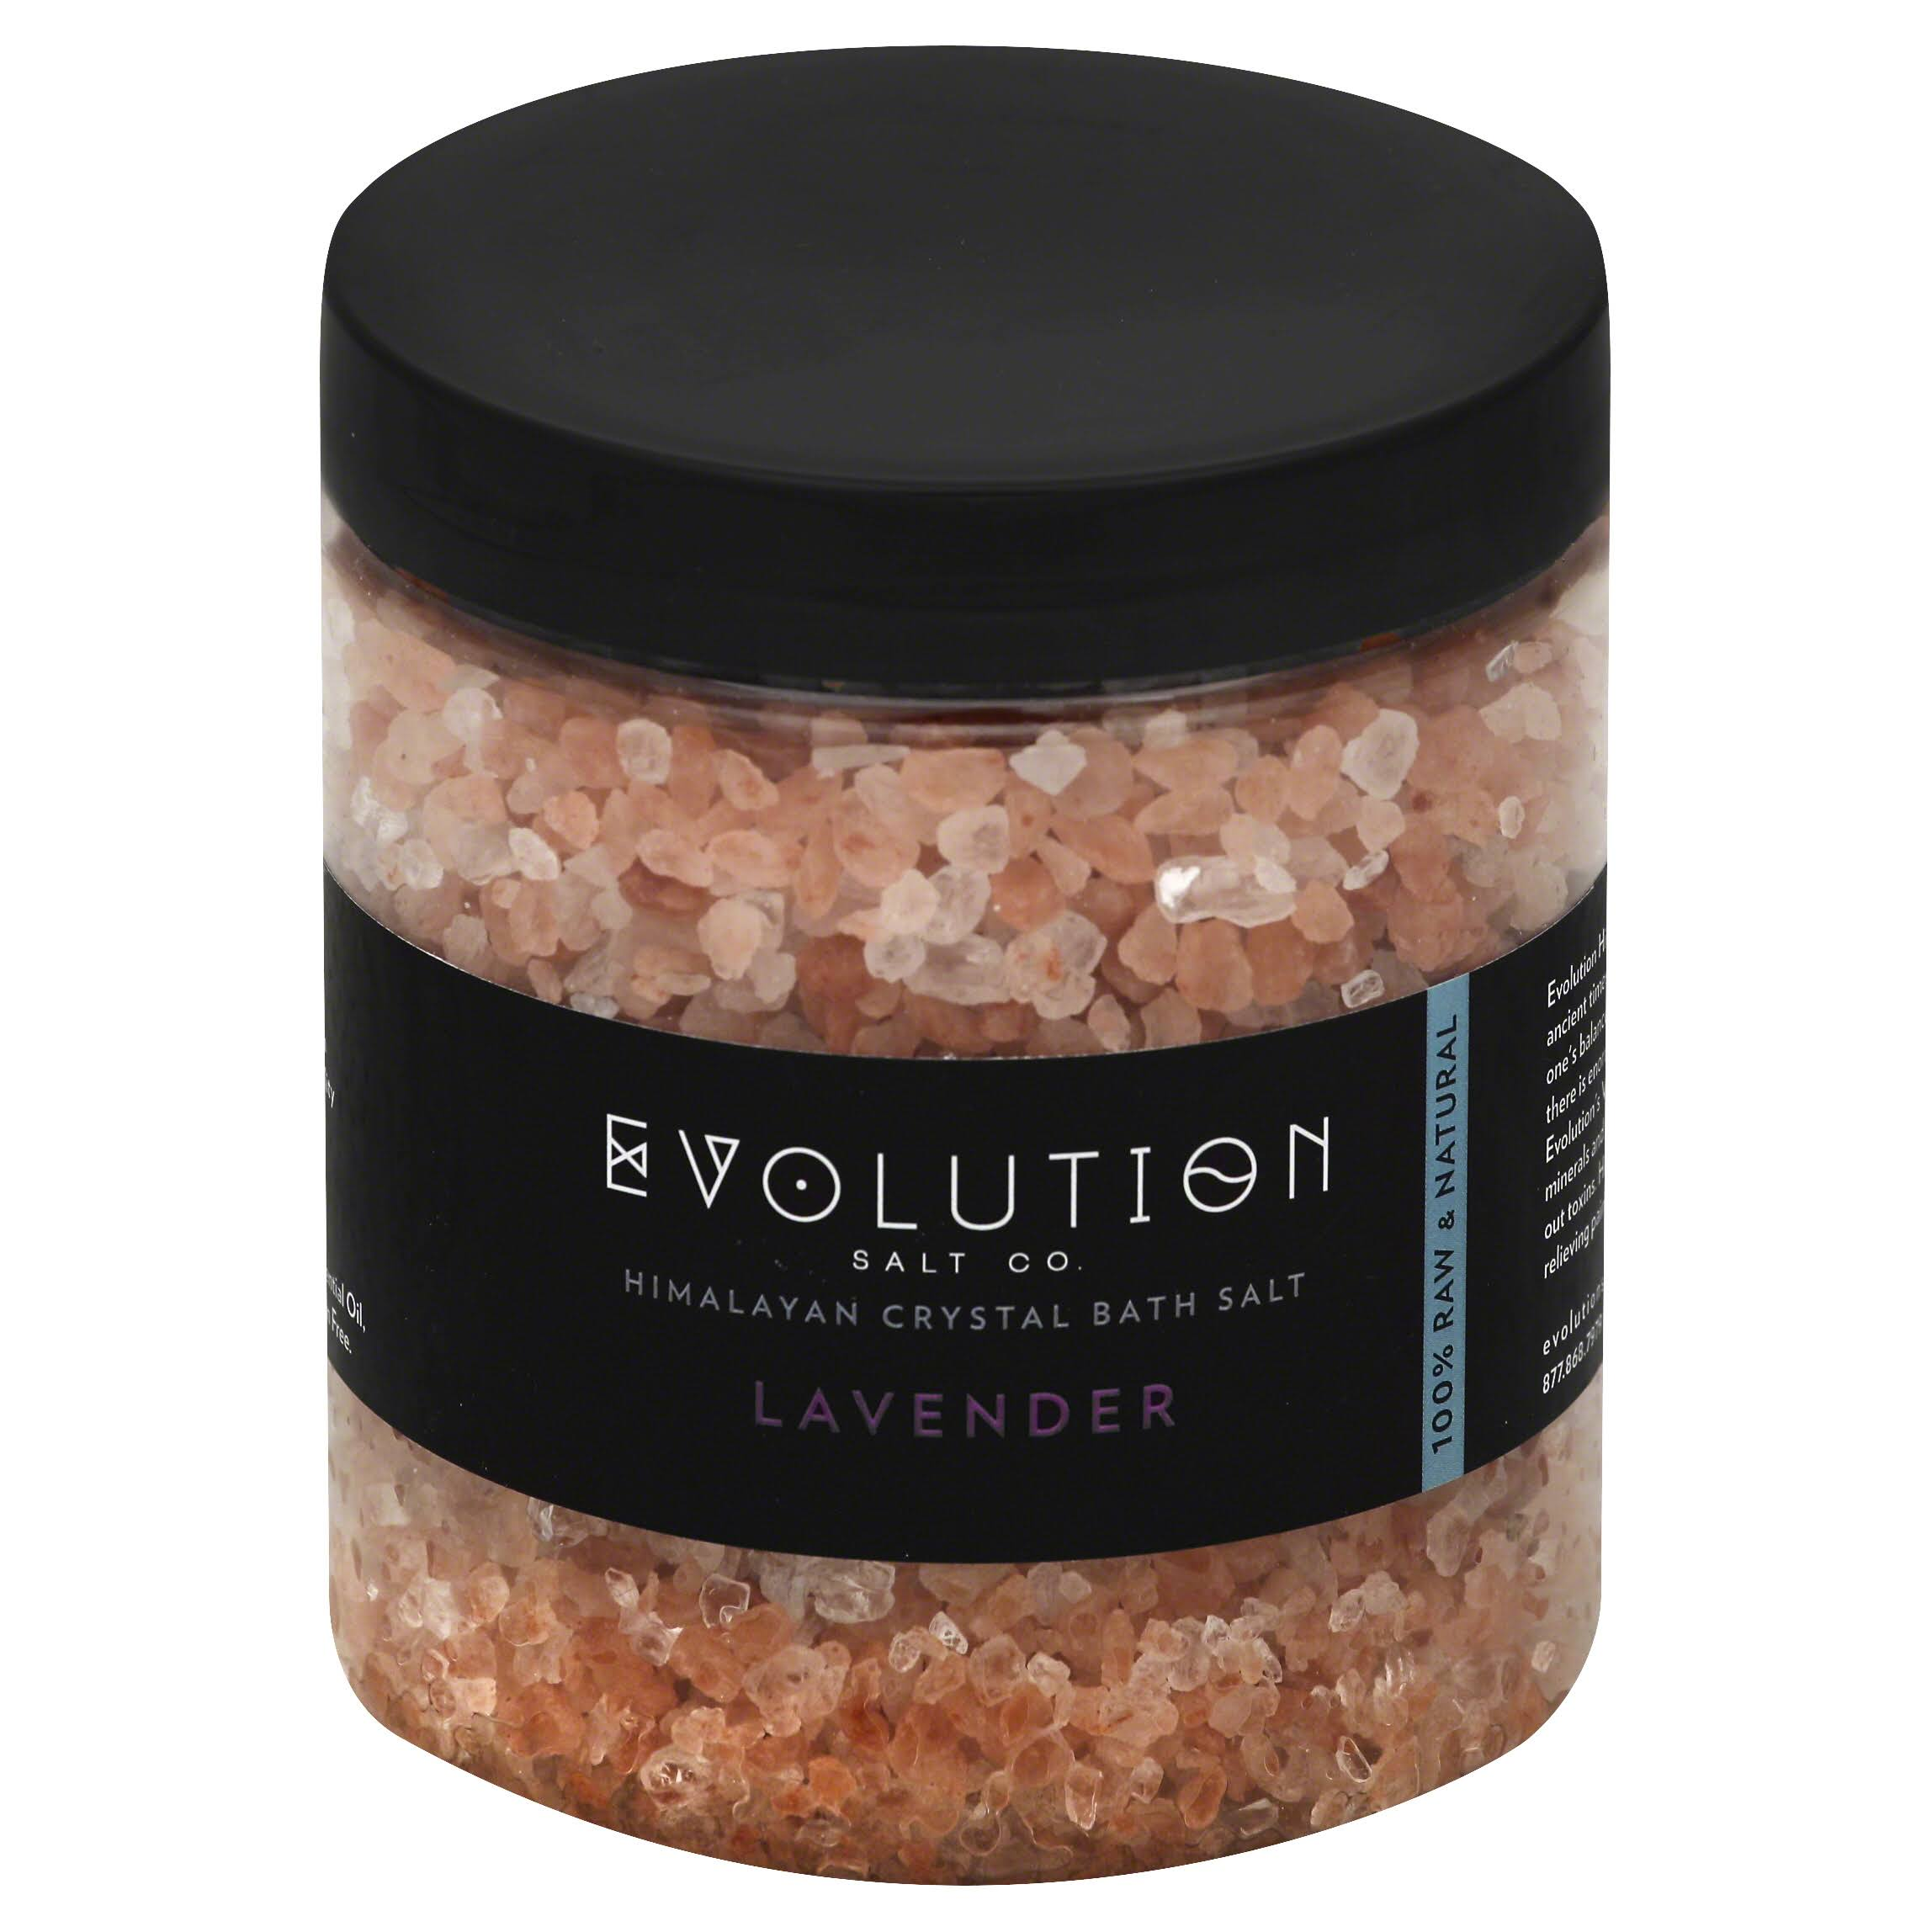 Evolution Salt Himalayan Crystal Bath Salt - Lavender, 26oz